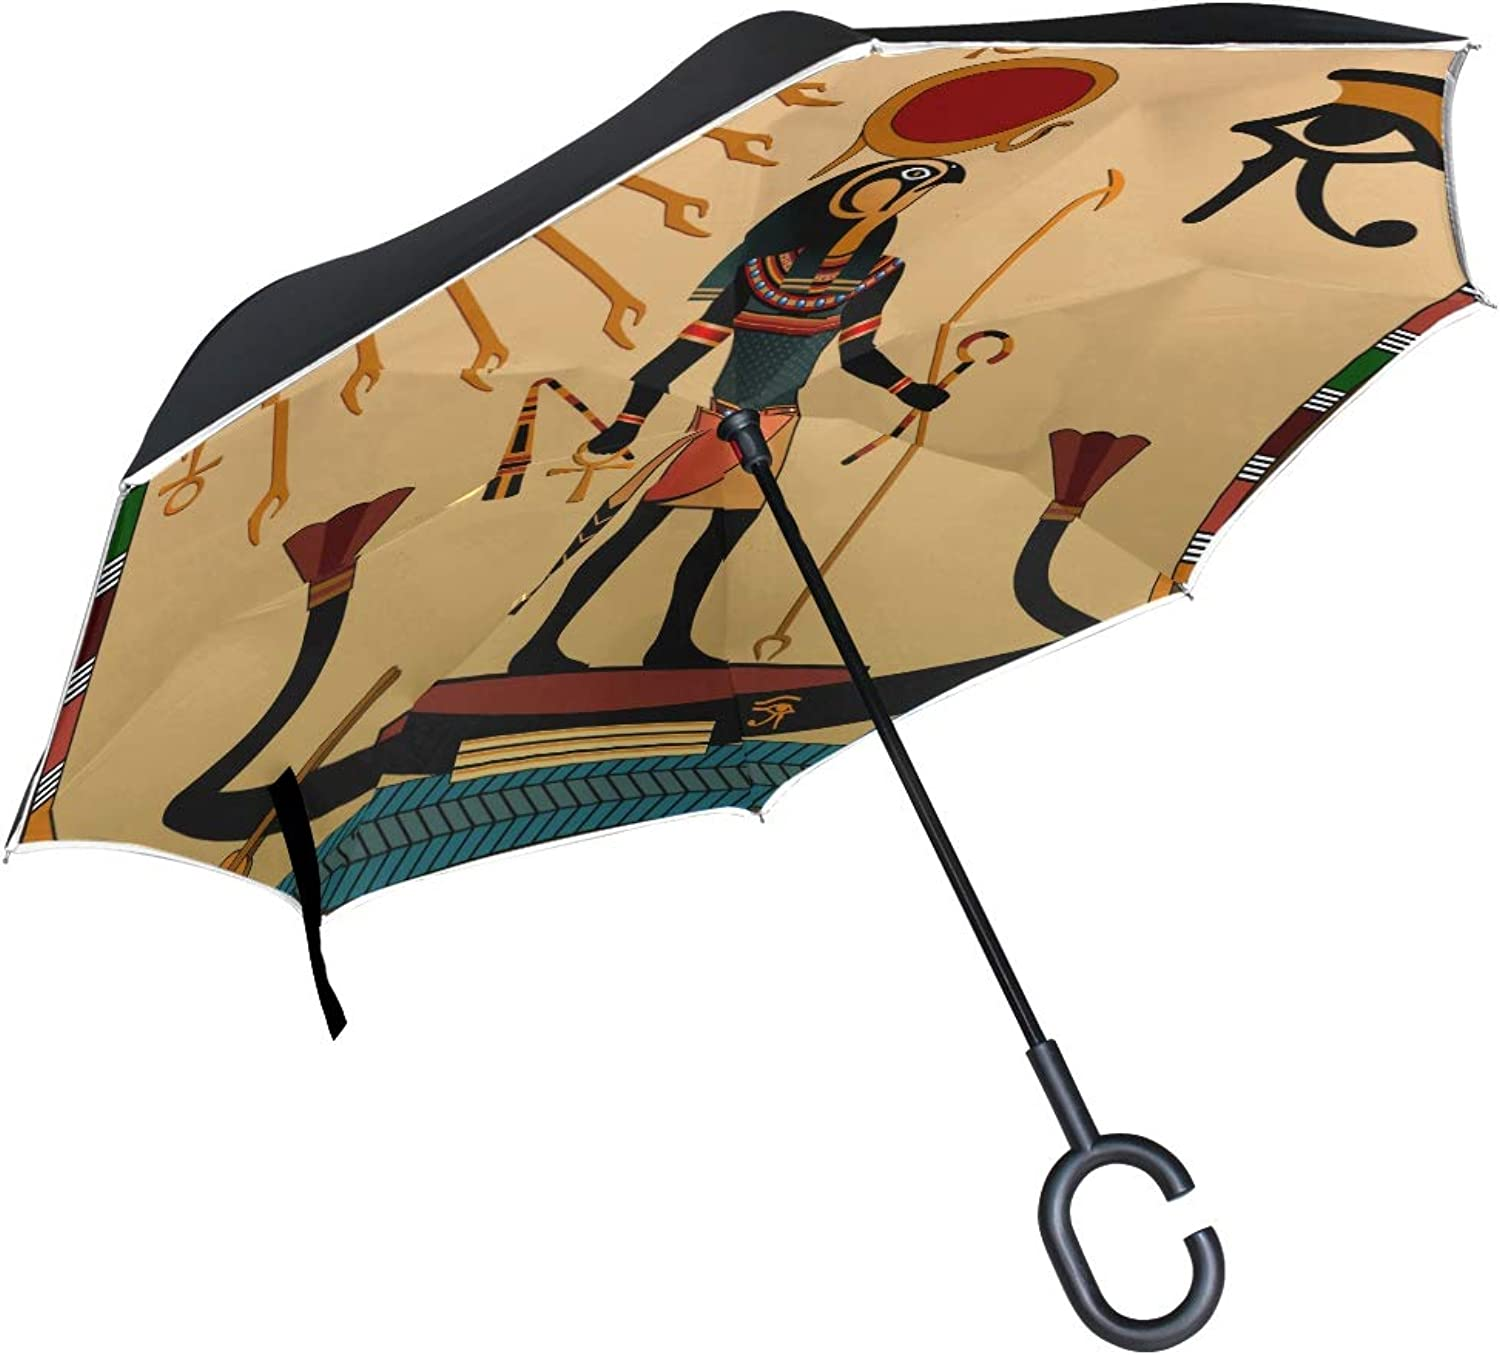 Double Layer Ingreened Ancient Ethnic Tribal Culture Egypt Totem Art African Anubis Sun God Umbrellas Reverse Folding Umbrella Uv Predection Straight Umbrella for Car Rain Outdoor with CShaped Handle